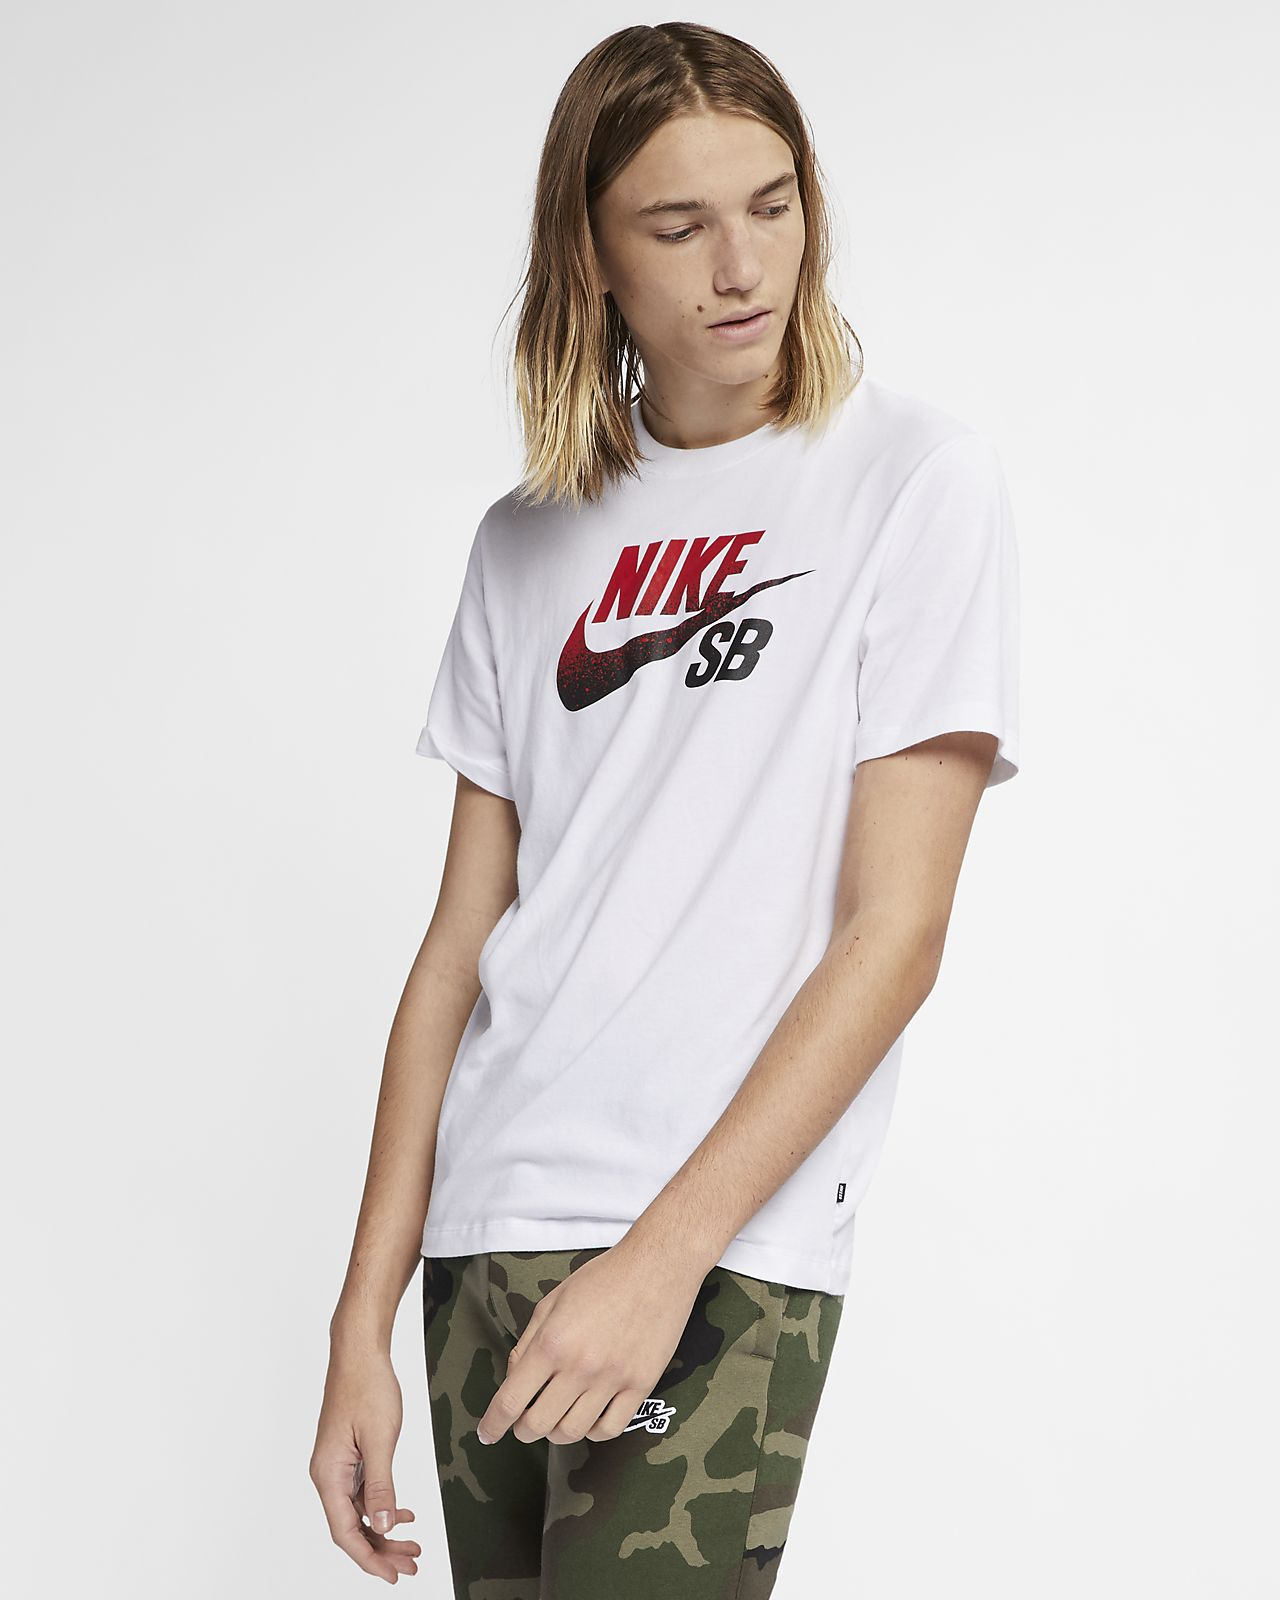 9da4bb61 Nike SB Dri-FIT Men's Logo Skate T-Shirt. Nike.com GB